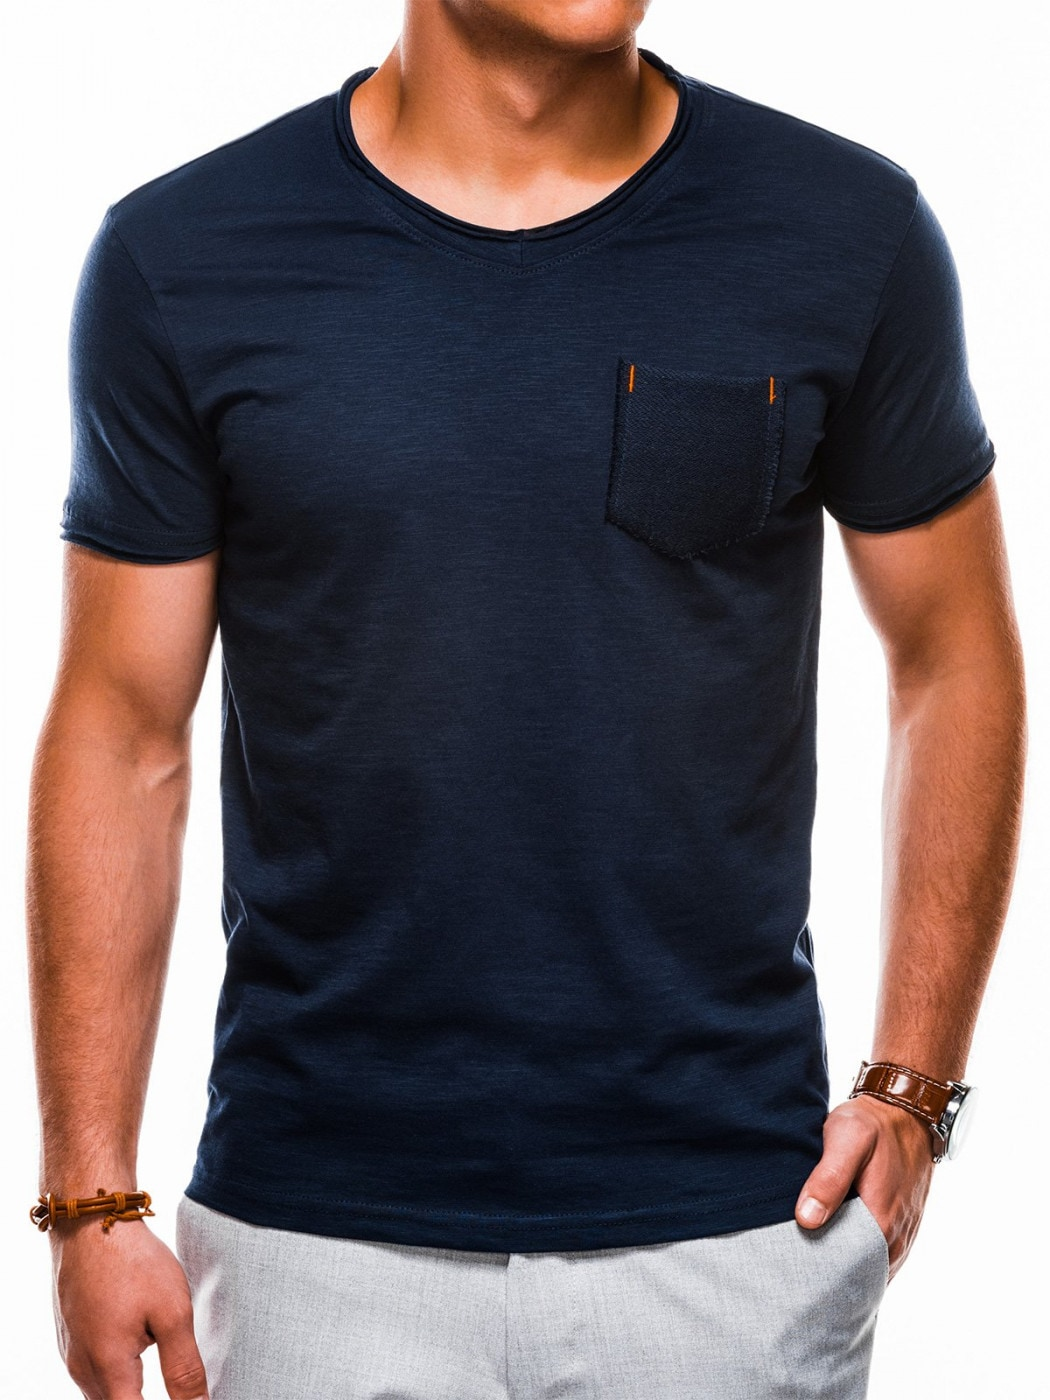 Ombre Clothing Men's plain t-shirt S1100